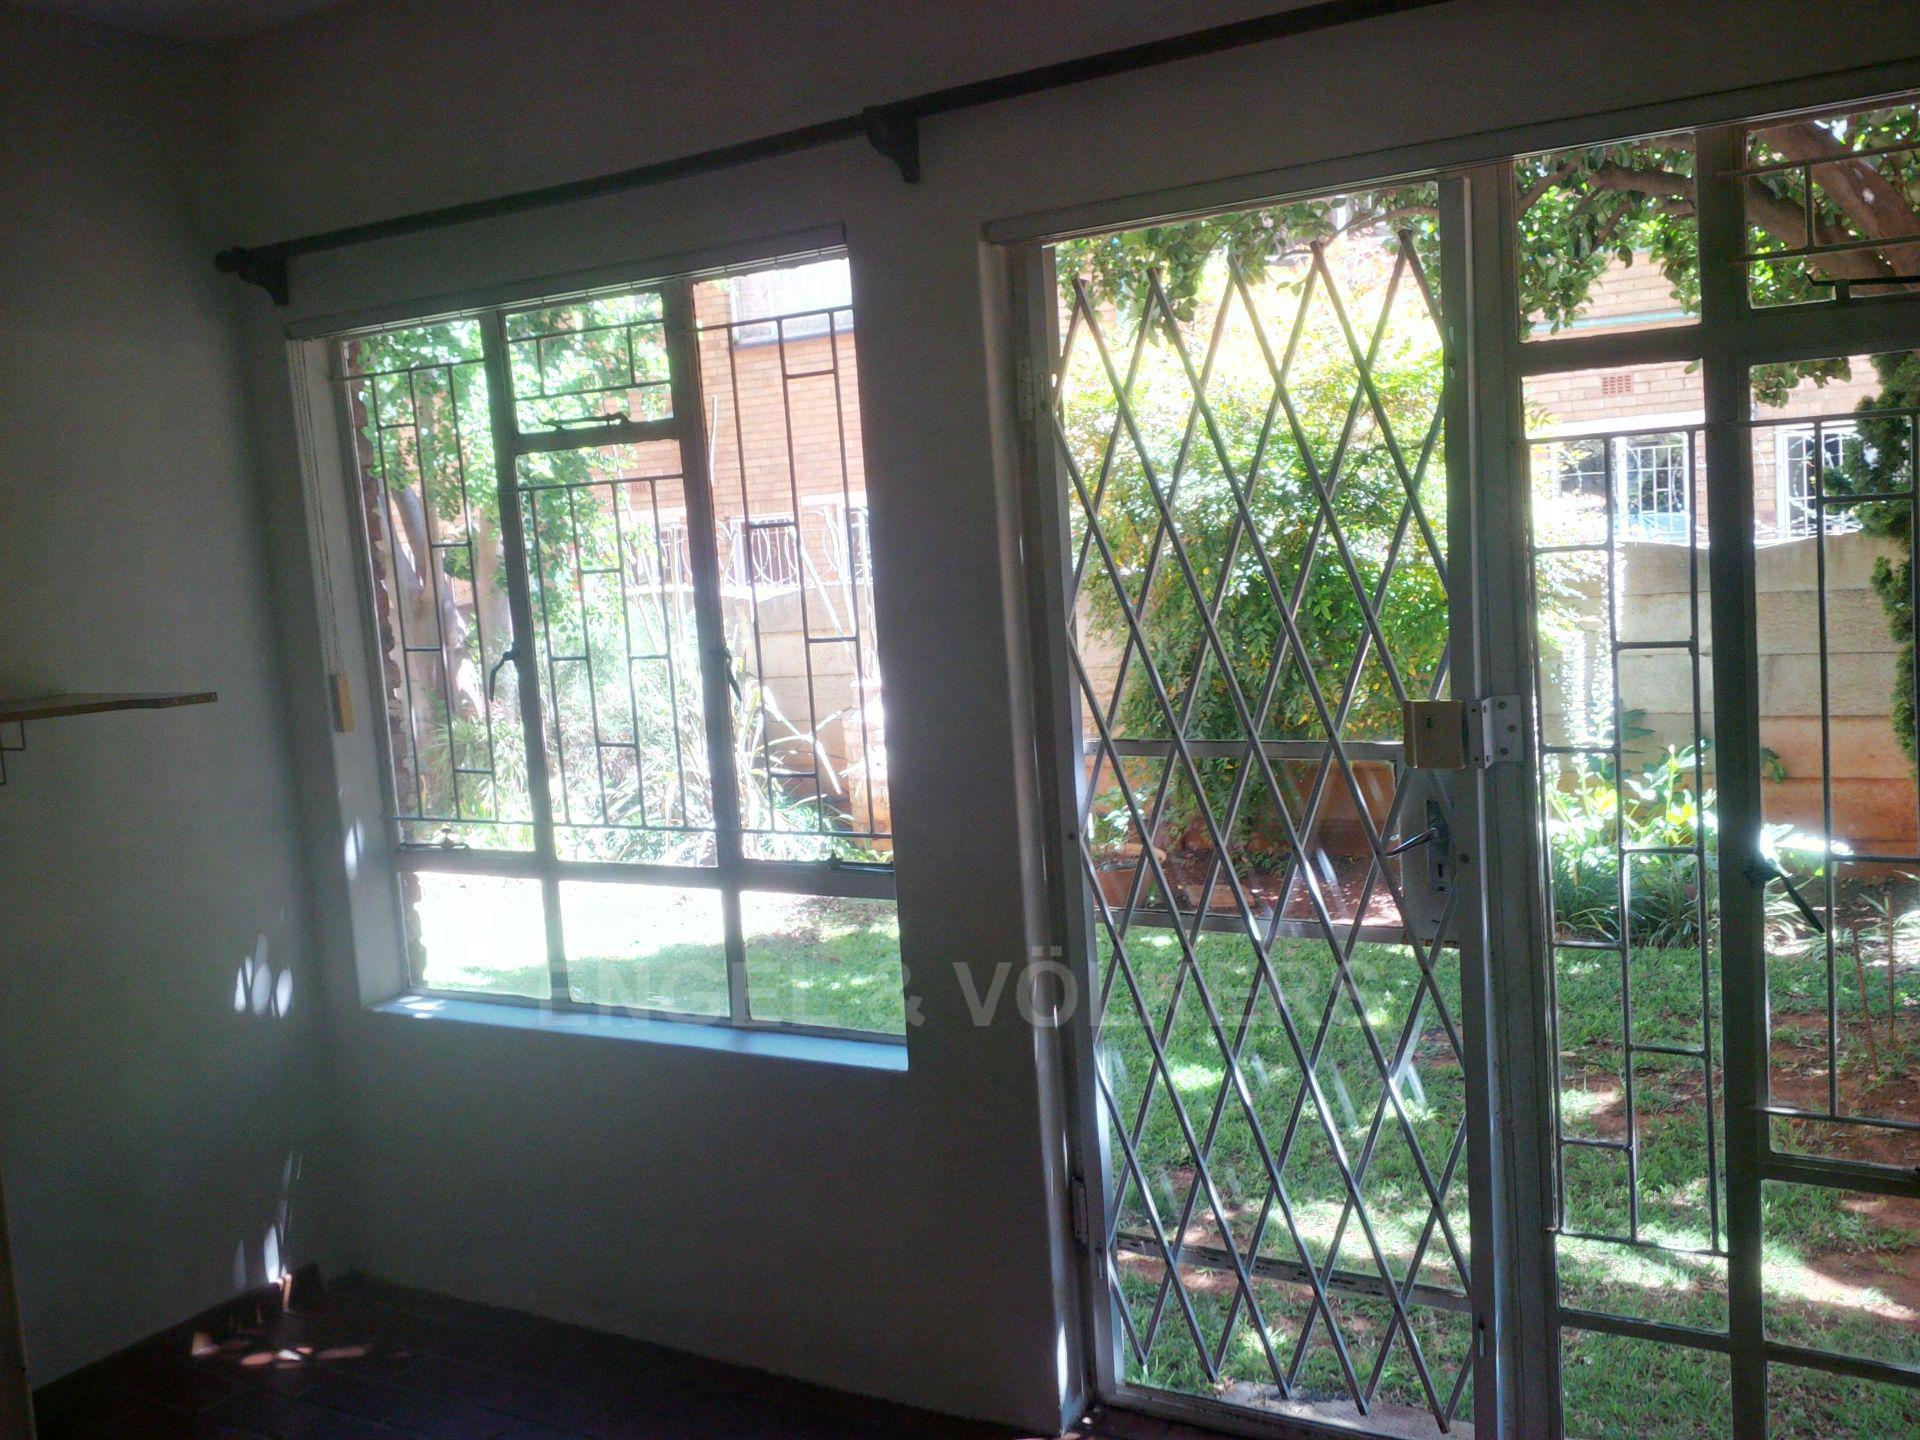 Potchefstroom Central property for sale. Ref No: 13549283. Picture no 8